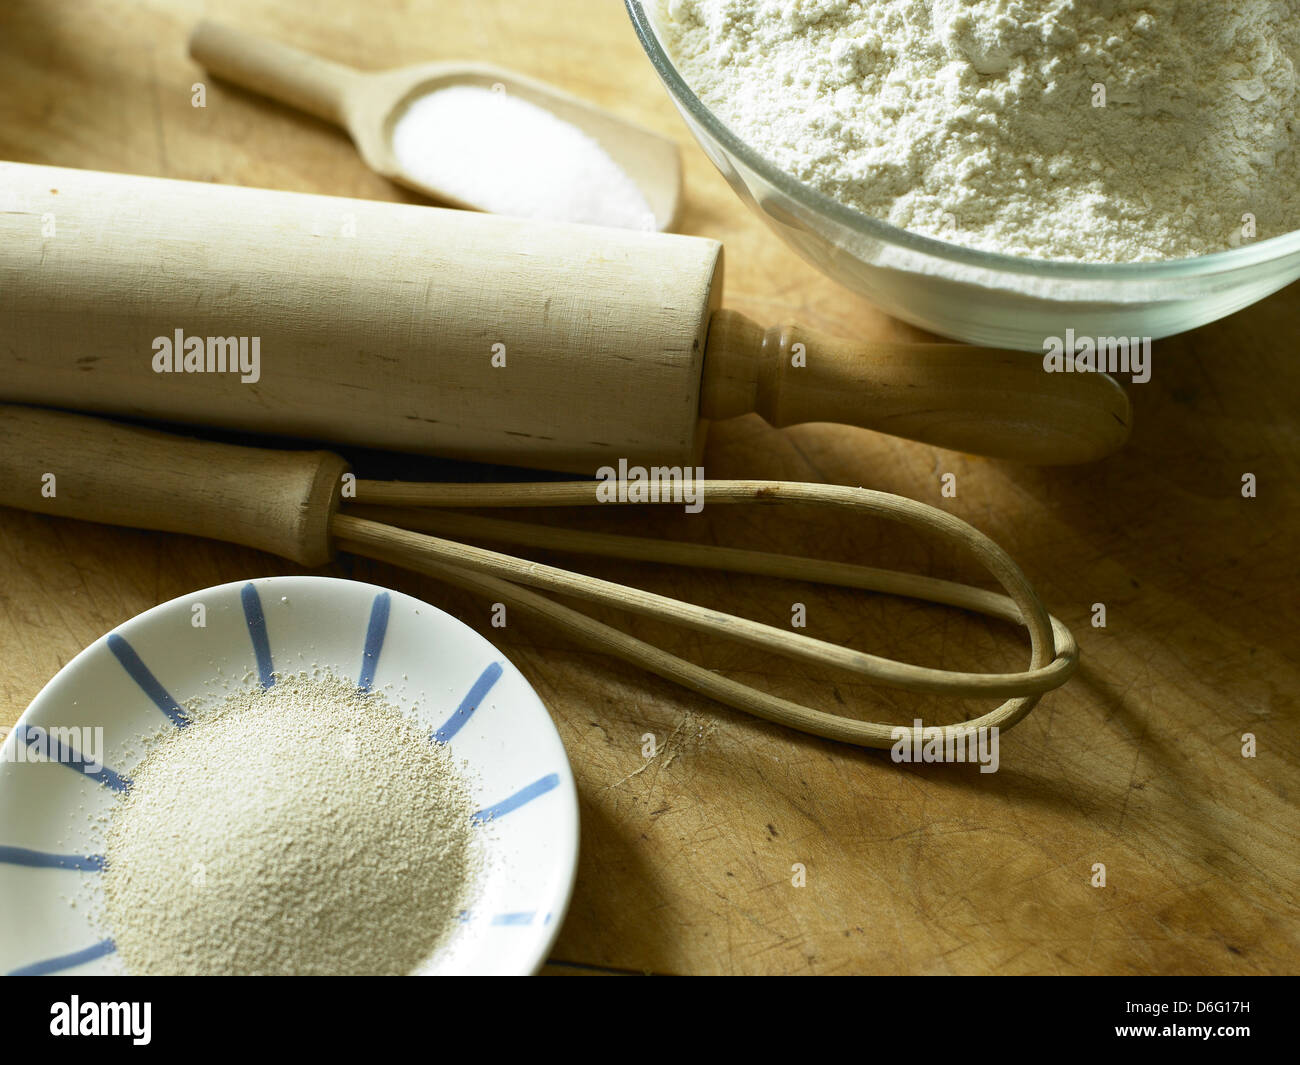 Flour, yeast, salt and baking props - Stock Image